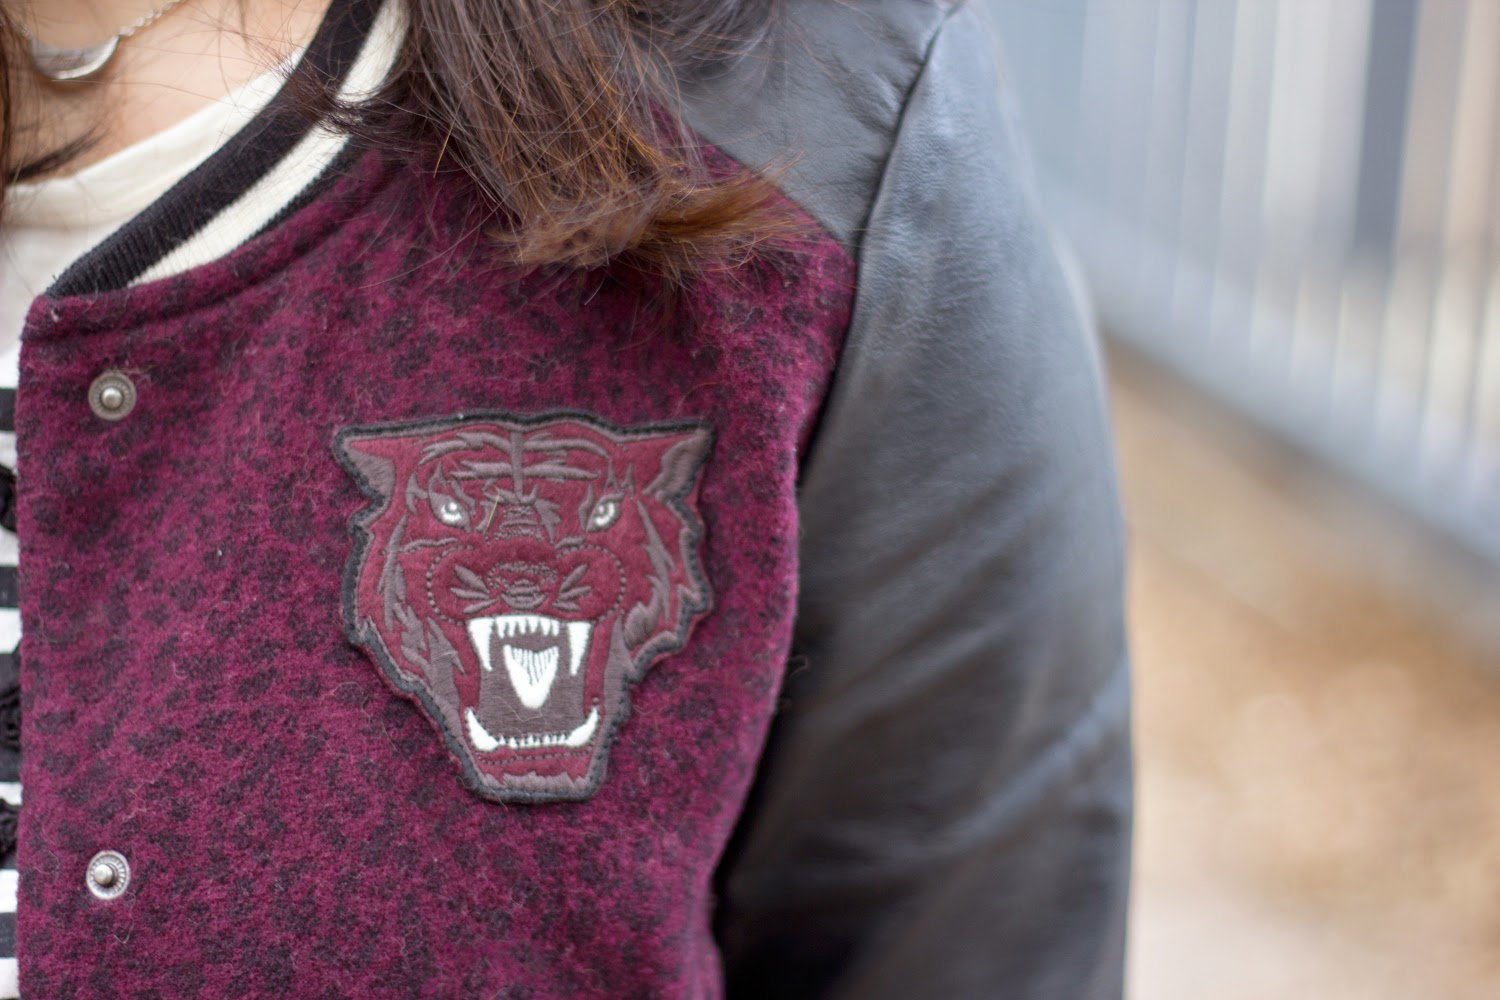 Burgundy-Faux-Leather-Sleeve-baseball-varsity-jacket, Spring-Casual-Look, Street-Style